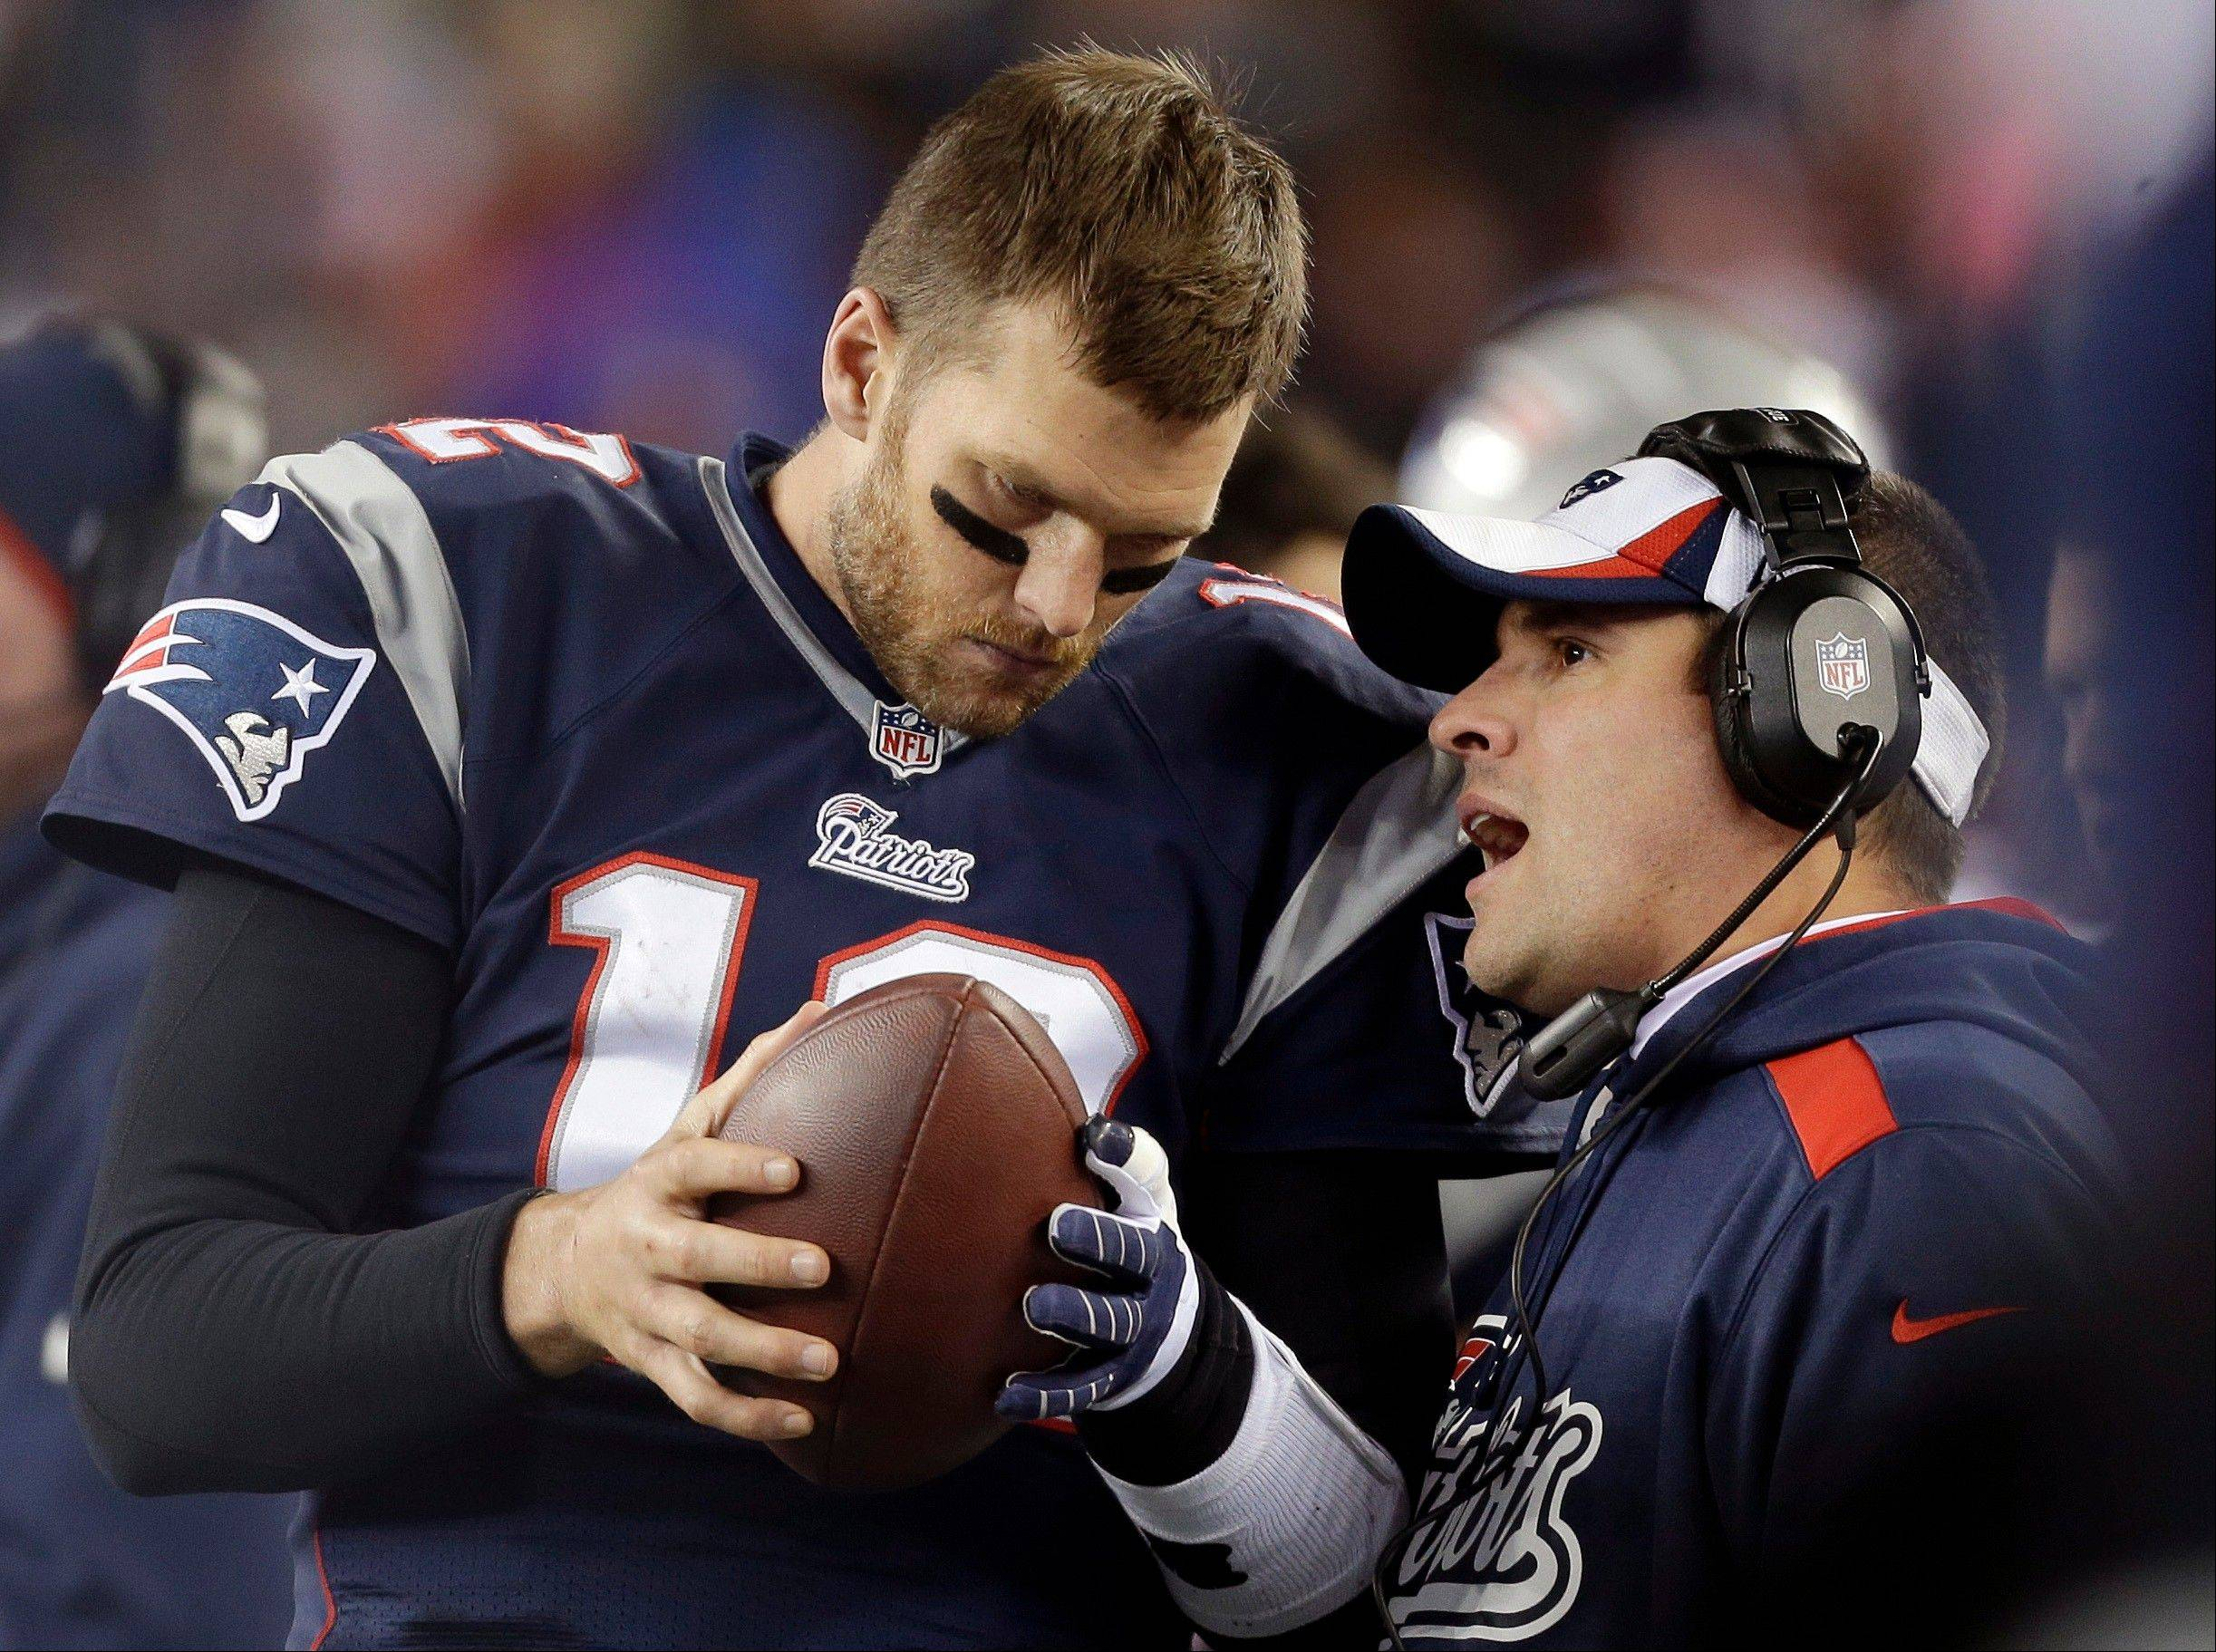 FILE - In this Nov. 3, 2013, file photo, New England Patriots offensive coordinator Josh McDaniels, right, talks to quarterback Tom Brady during the fourth quarter of an NFL football game against the Pittsburgh Steelers in Foxborough, Mass. No name stirs up quite as much angst and anger around Denver as McDaniels. The former Broncos coach, now offensive coordinator for the Patriots, left havoc in the wake of his two-year stint in Denver, and has a chance to leave another scar when the Patriots meet the Broncos in the AFC championship game on Sunday.